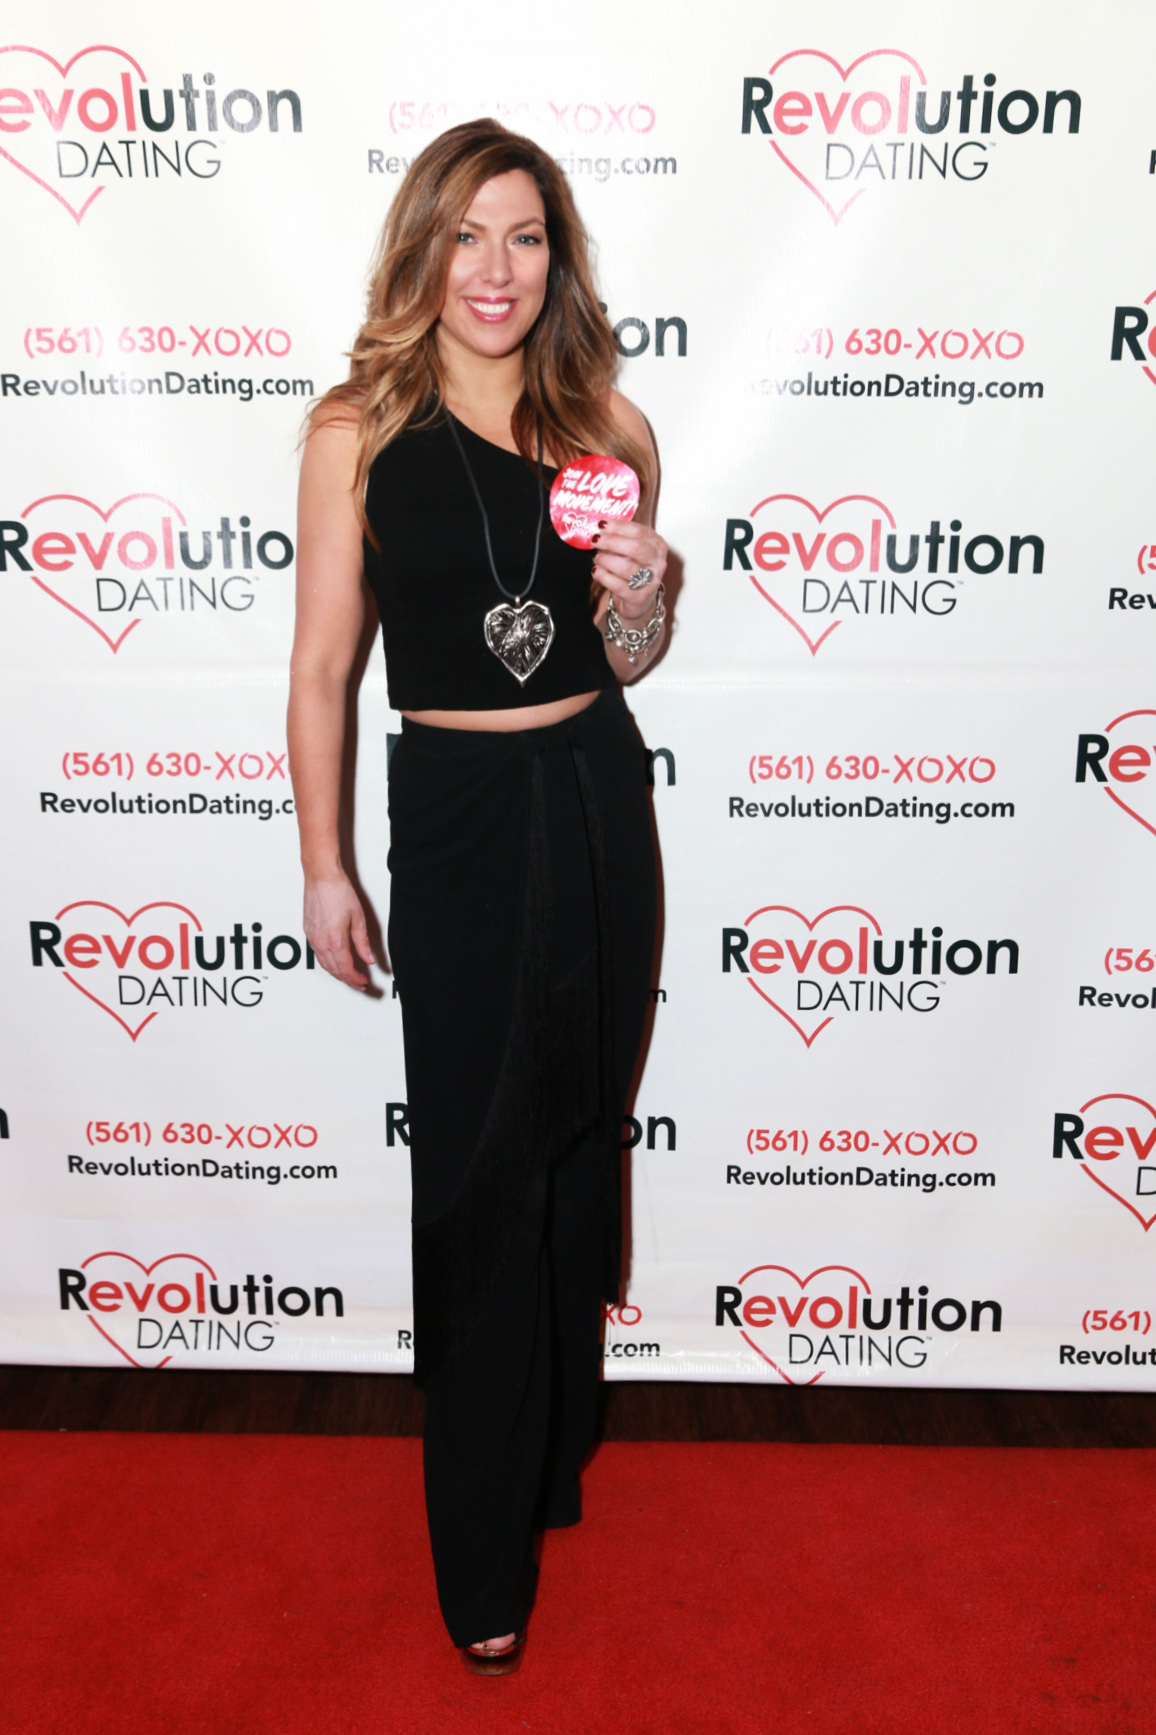 Revolution dating florida kelly leary